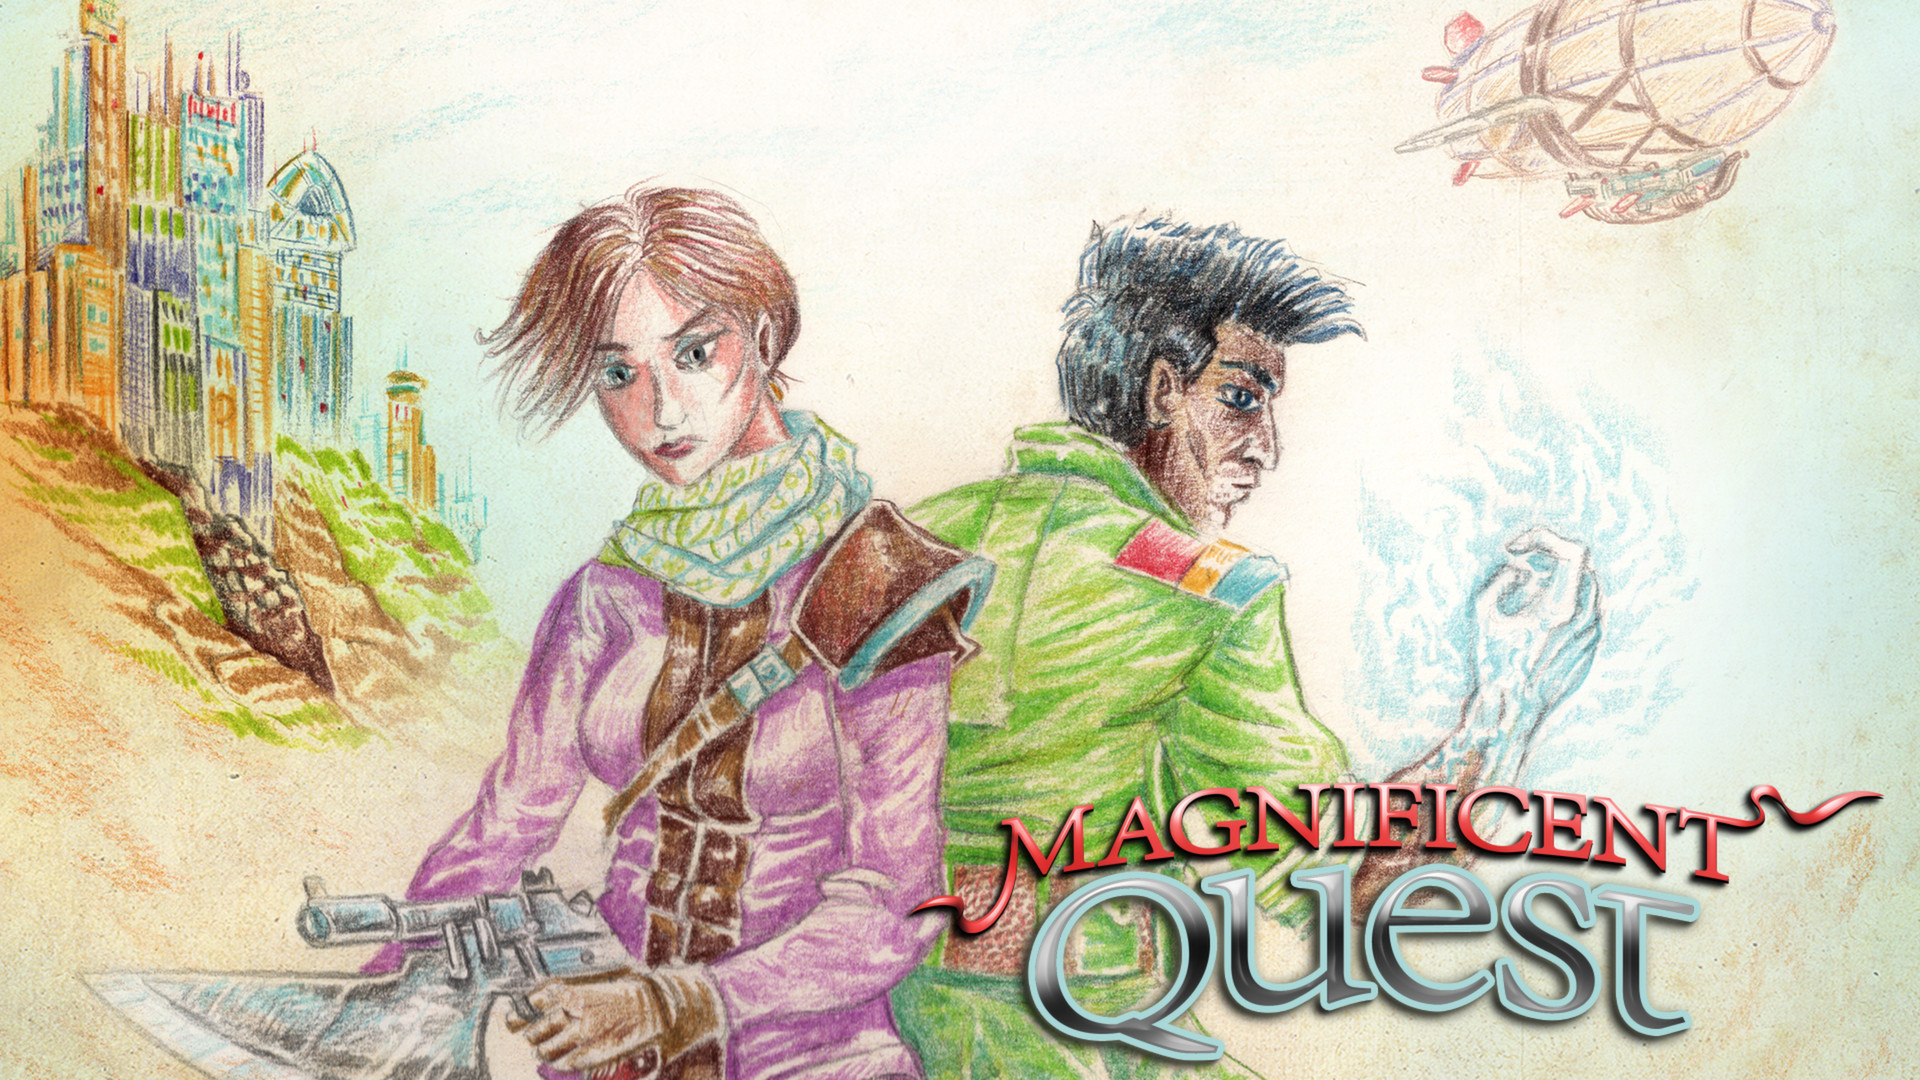 RPG Maker VX Ace - Magnificent Quest Music Pack screenshot